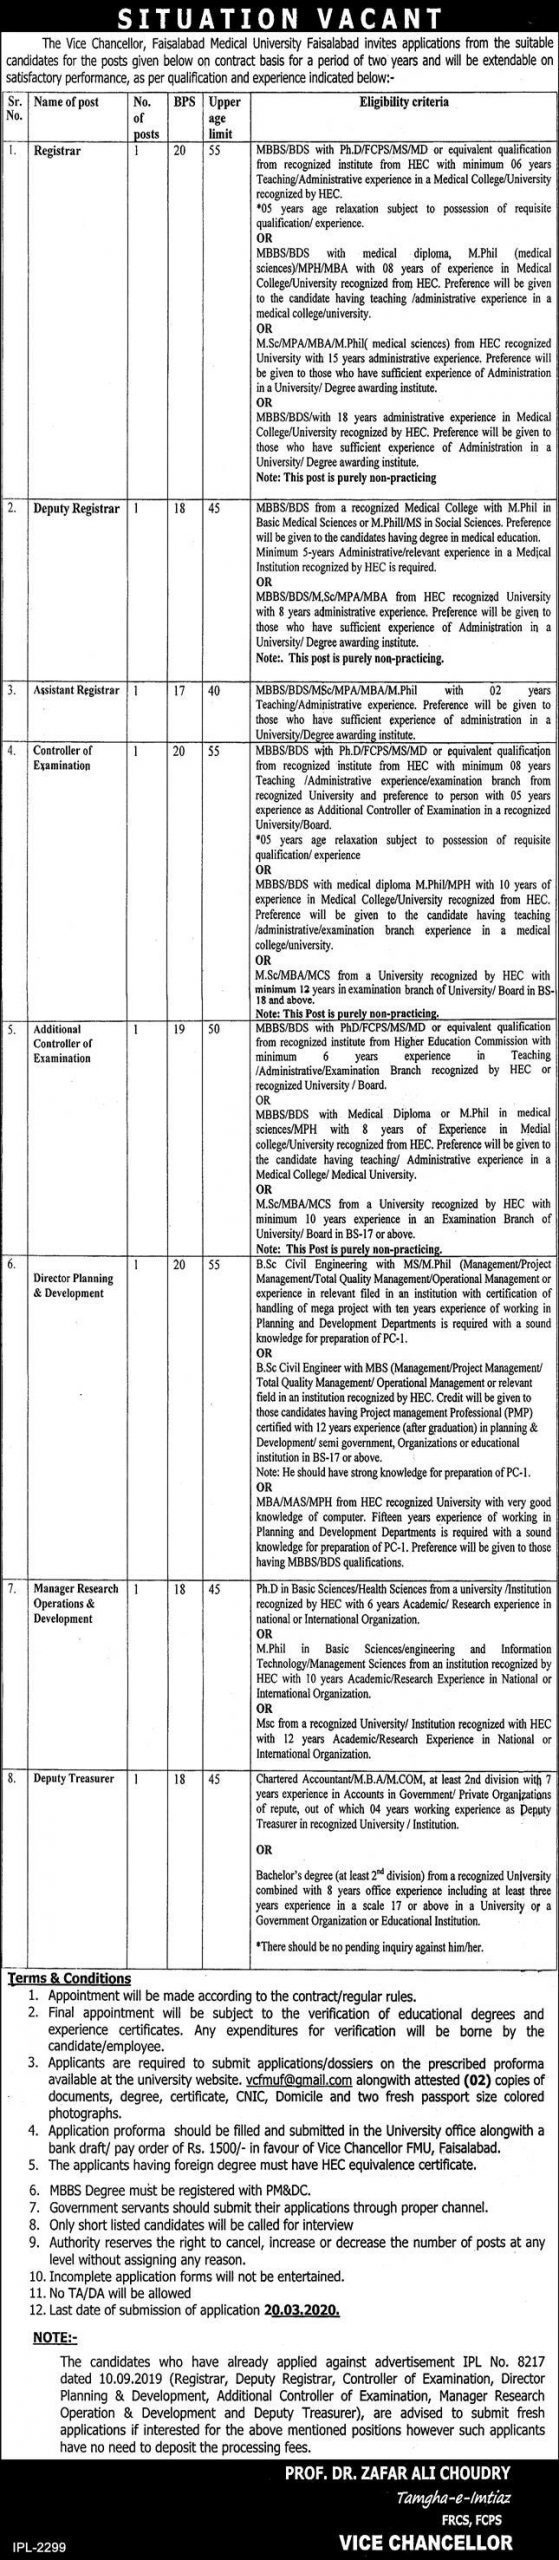 Faisalabad Medical University Jobs FMC March 2020